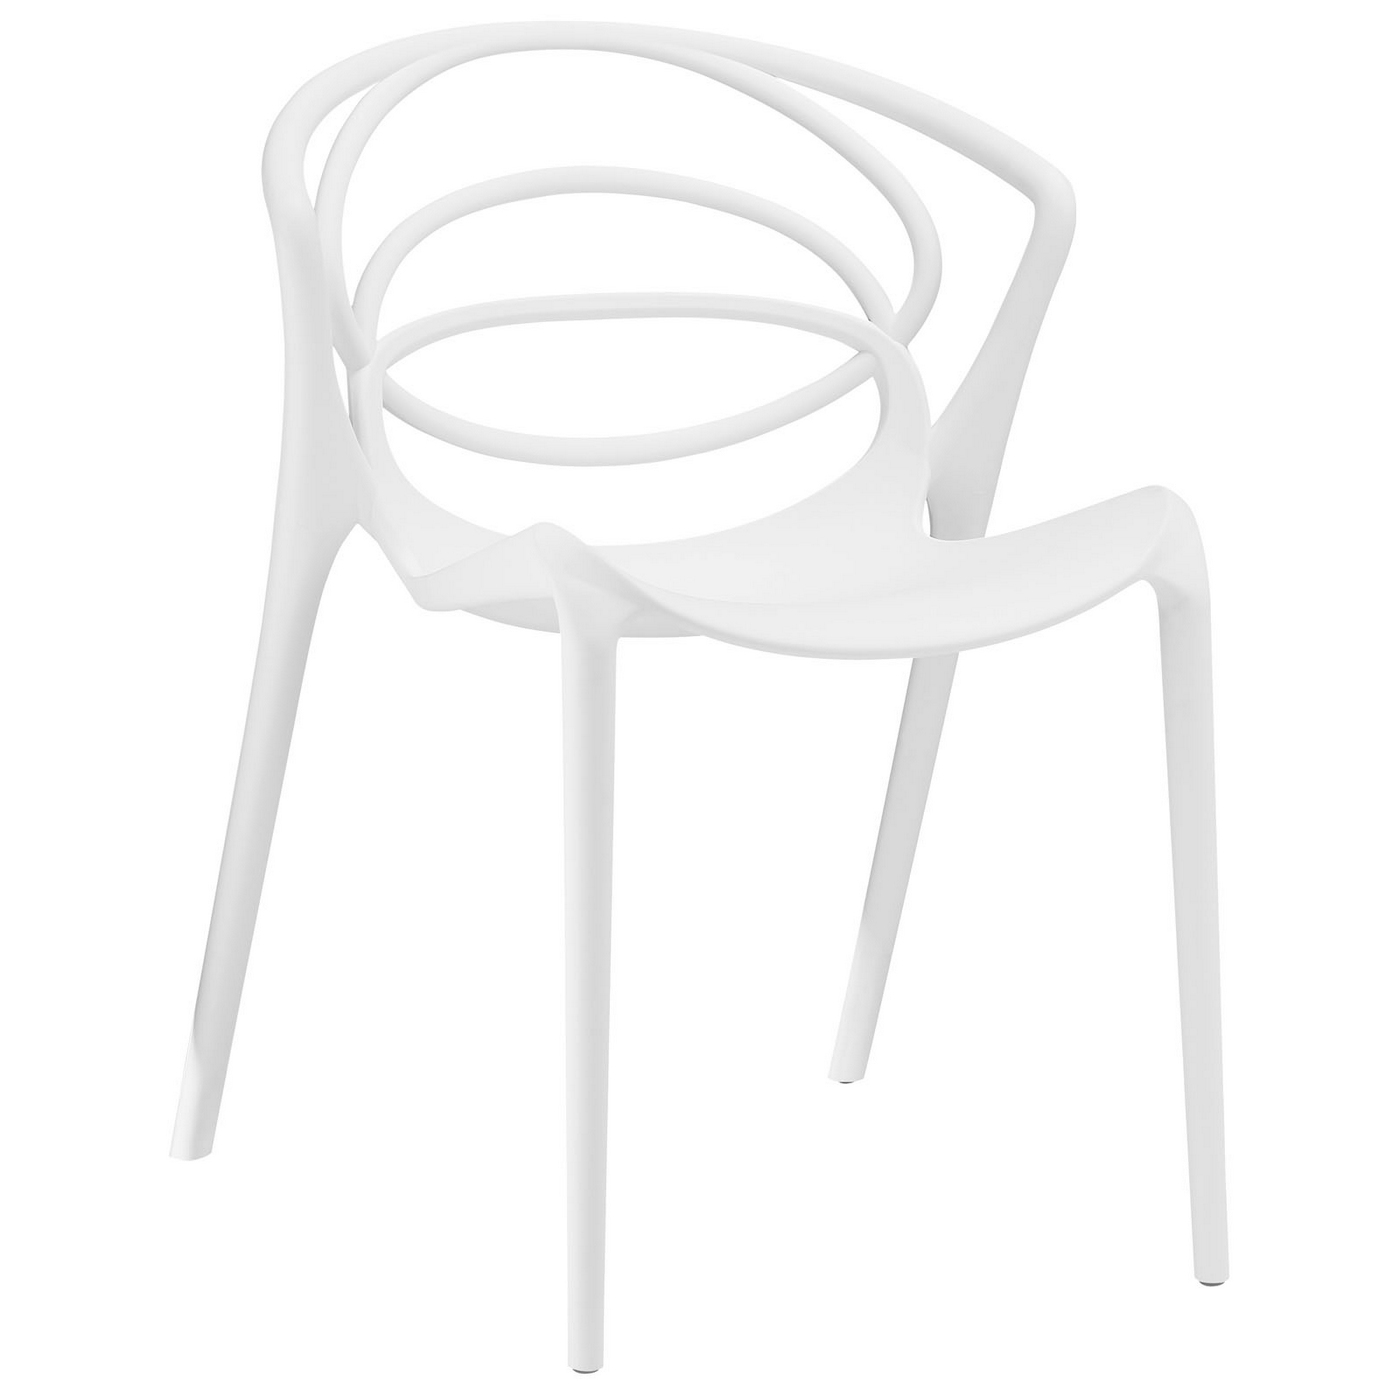 White Plastic Modern Chairs Locus Modern Molded Plastic Stylish Dining Side Chair White